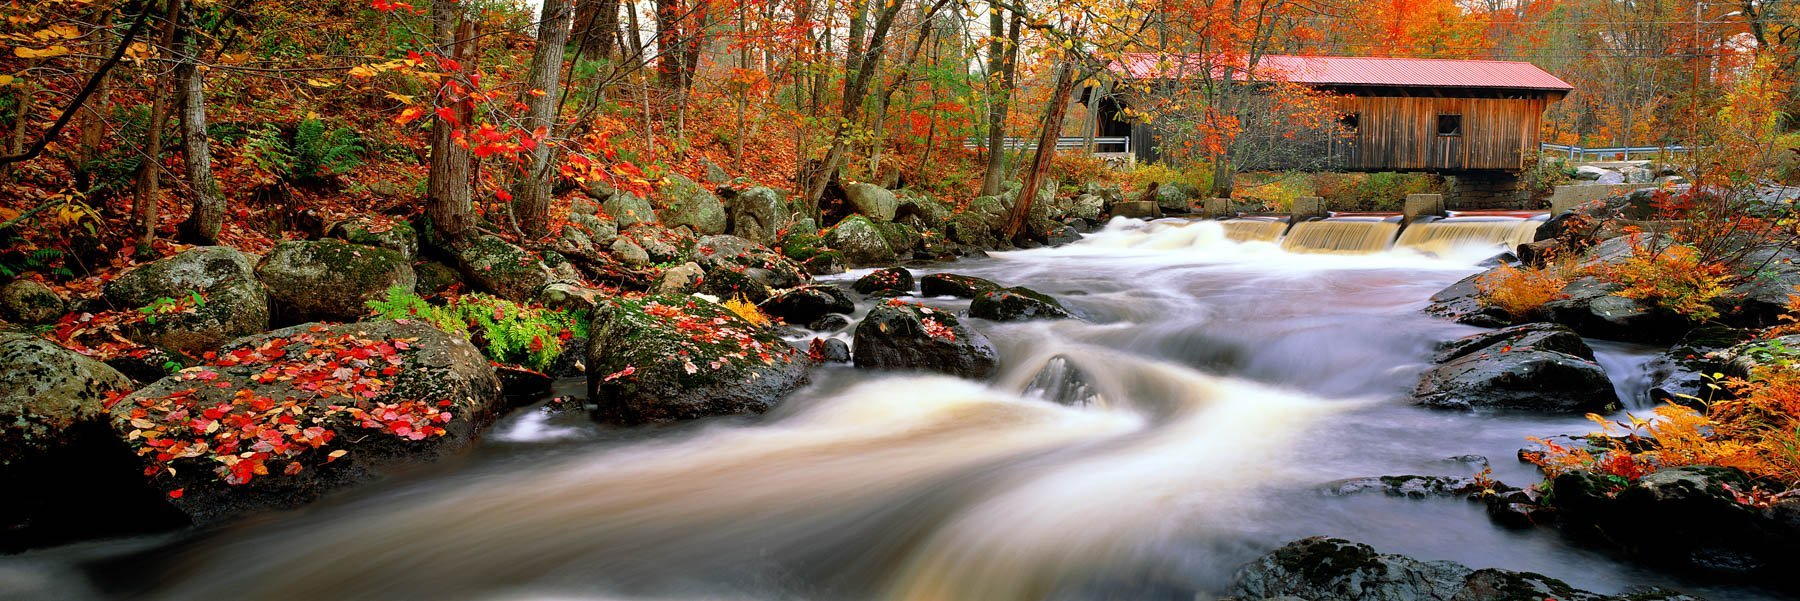 Autumn leaves forming delicate patters on moss-covered rocks beside a whispering stream, New Hampshire, USA.